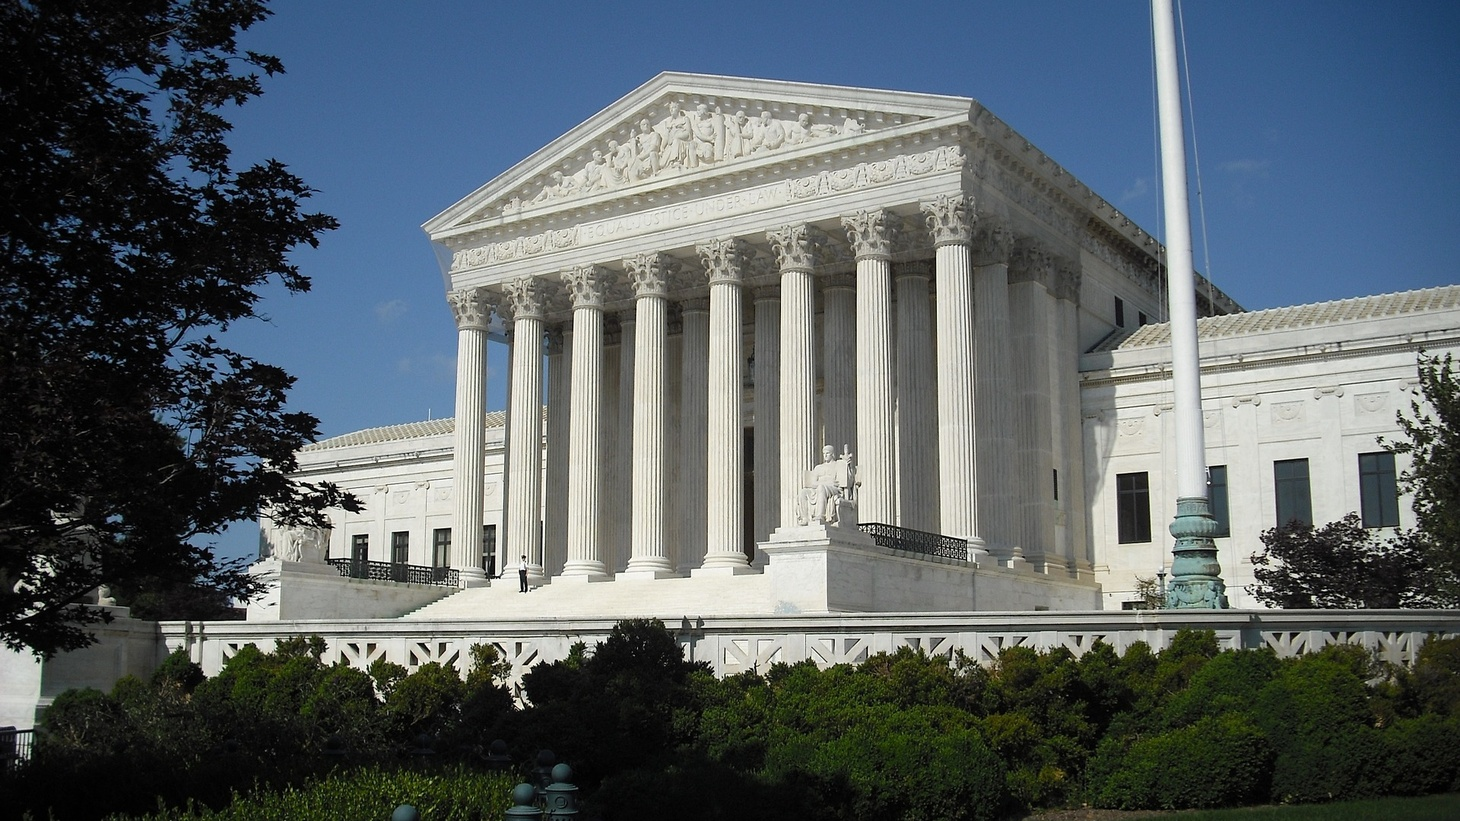 """""""This idea that the Supreme Court will be better off with term limits is not a new one. … It's clear that the longevity of justices has transformed the meaning of life tenure, and given us a sort of politically unsustainable situation where the stakes of every judicial appointment are just too great. And that really polarizes and sharpens our politics,"""" says Danielle Allen, a professor and political theorist at Harvard."""